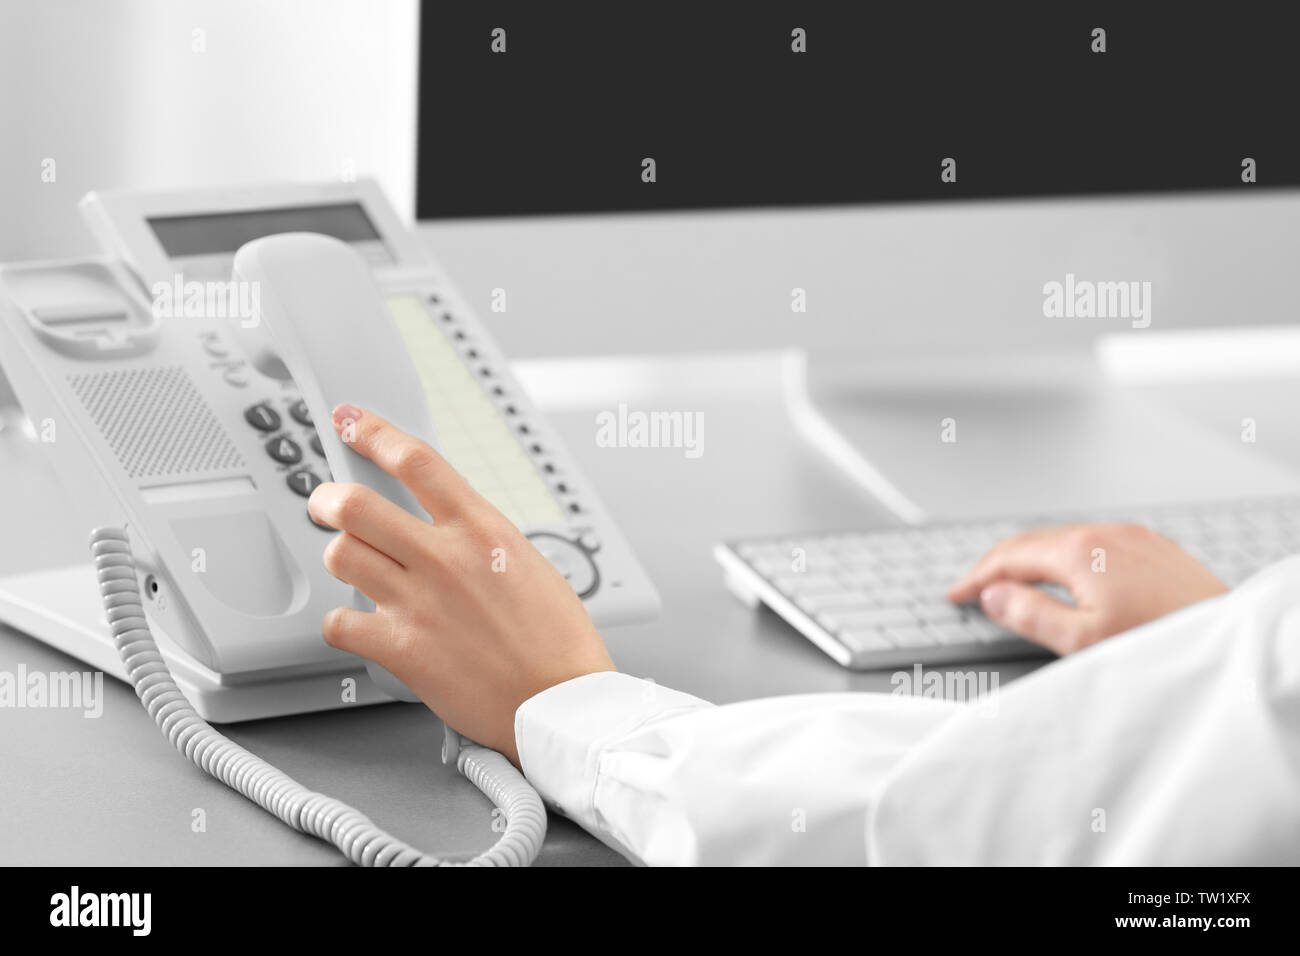 Woman dialing number on telephone while working in office - Stock Image